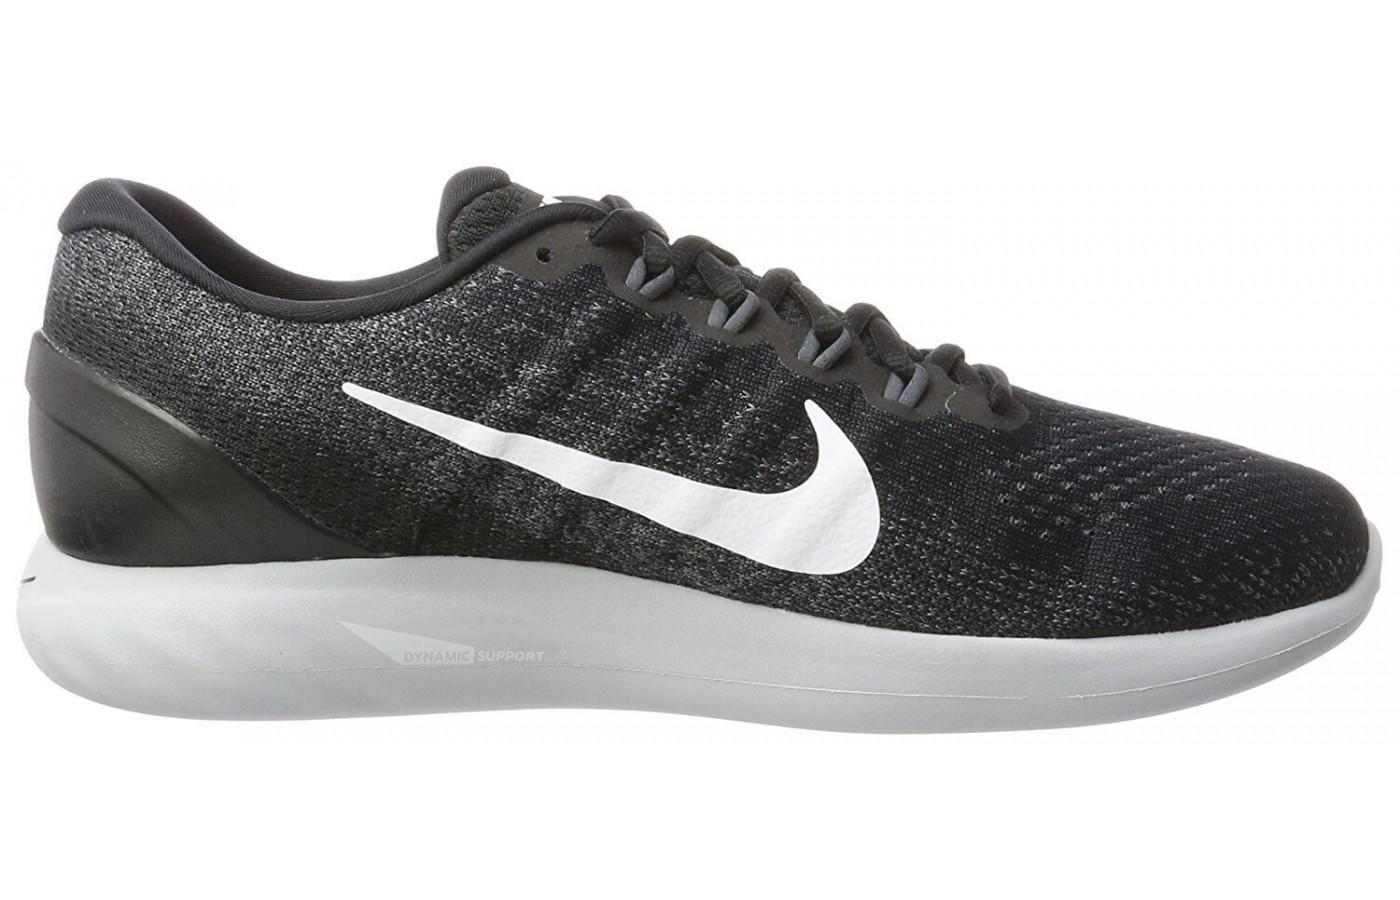 ... the low-cut profile of the Nike Lunarglide 9 is comfortable and offers  great multi ... 63986ef6a230